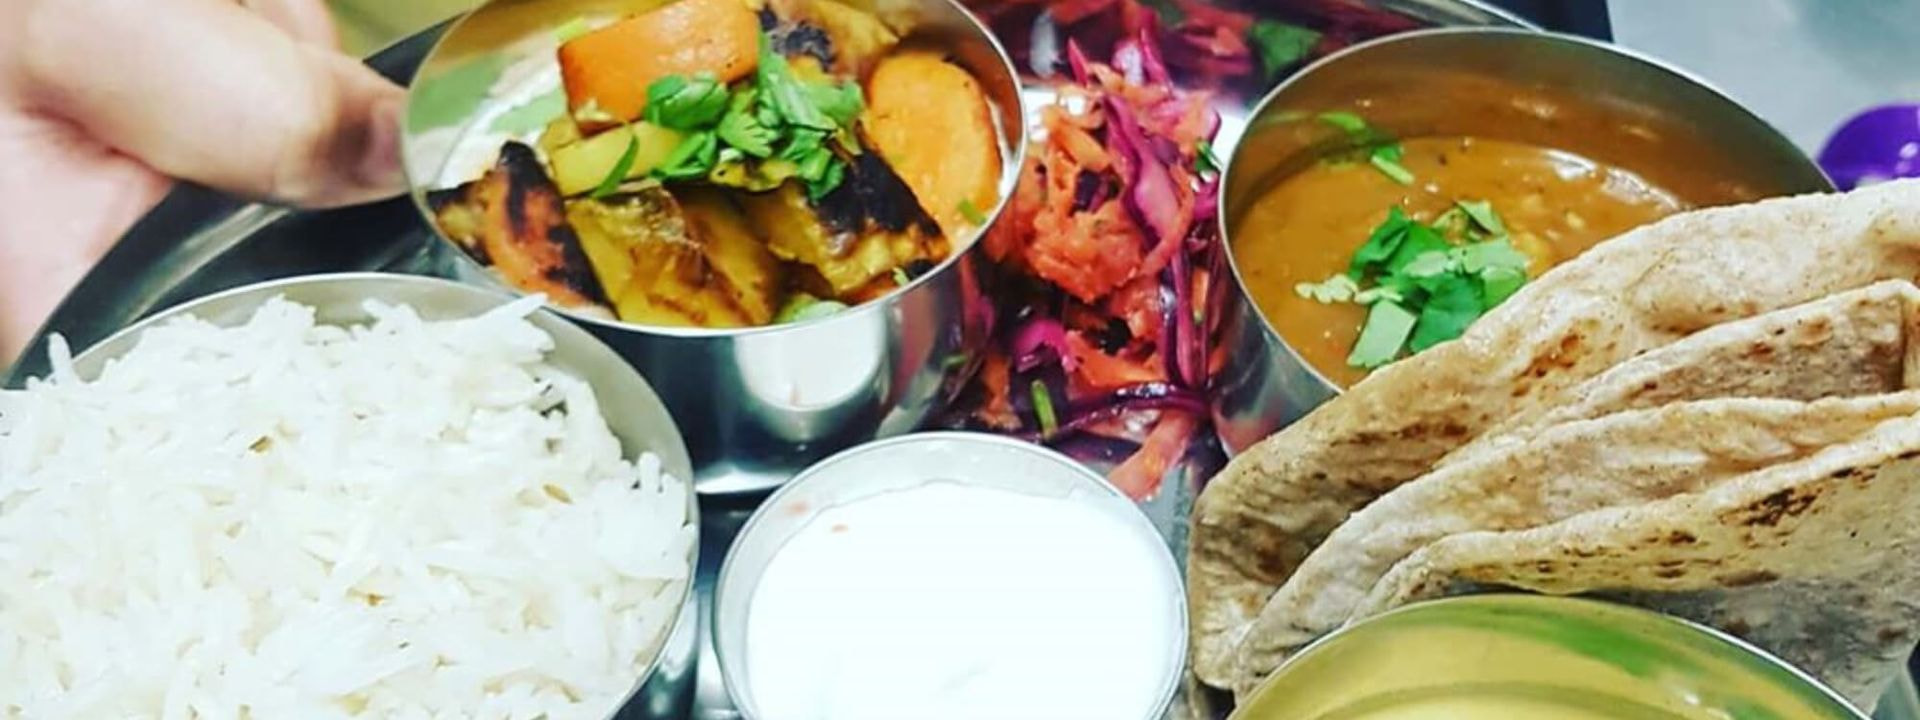 Food from Manjit's Kitchen